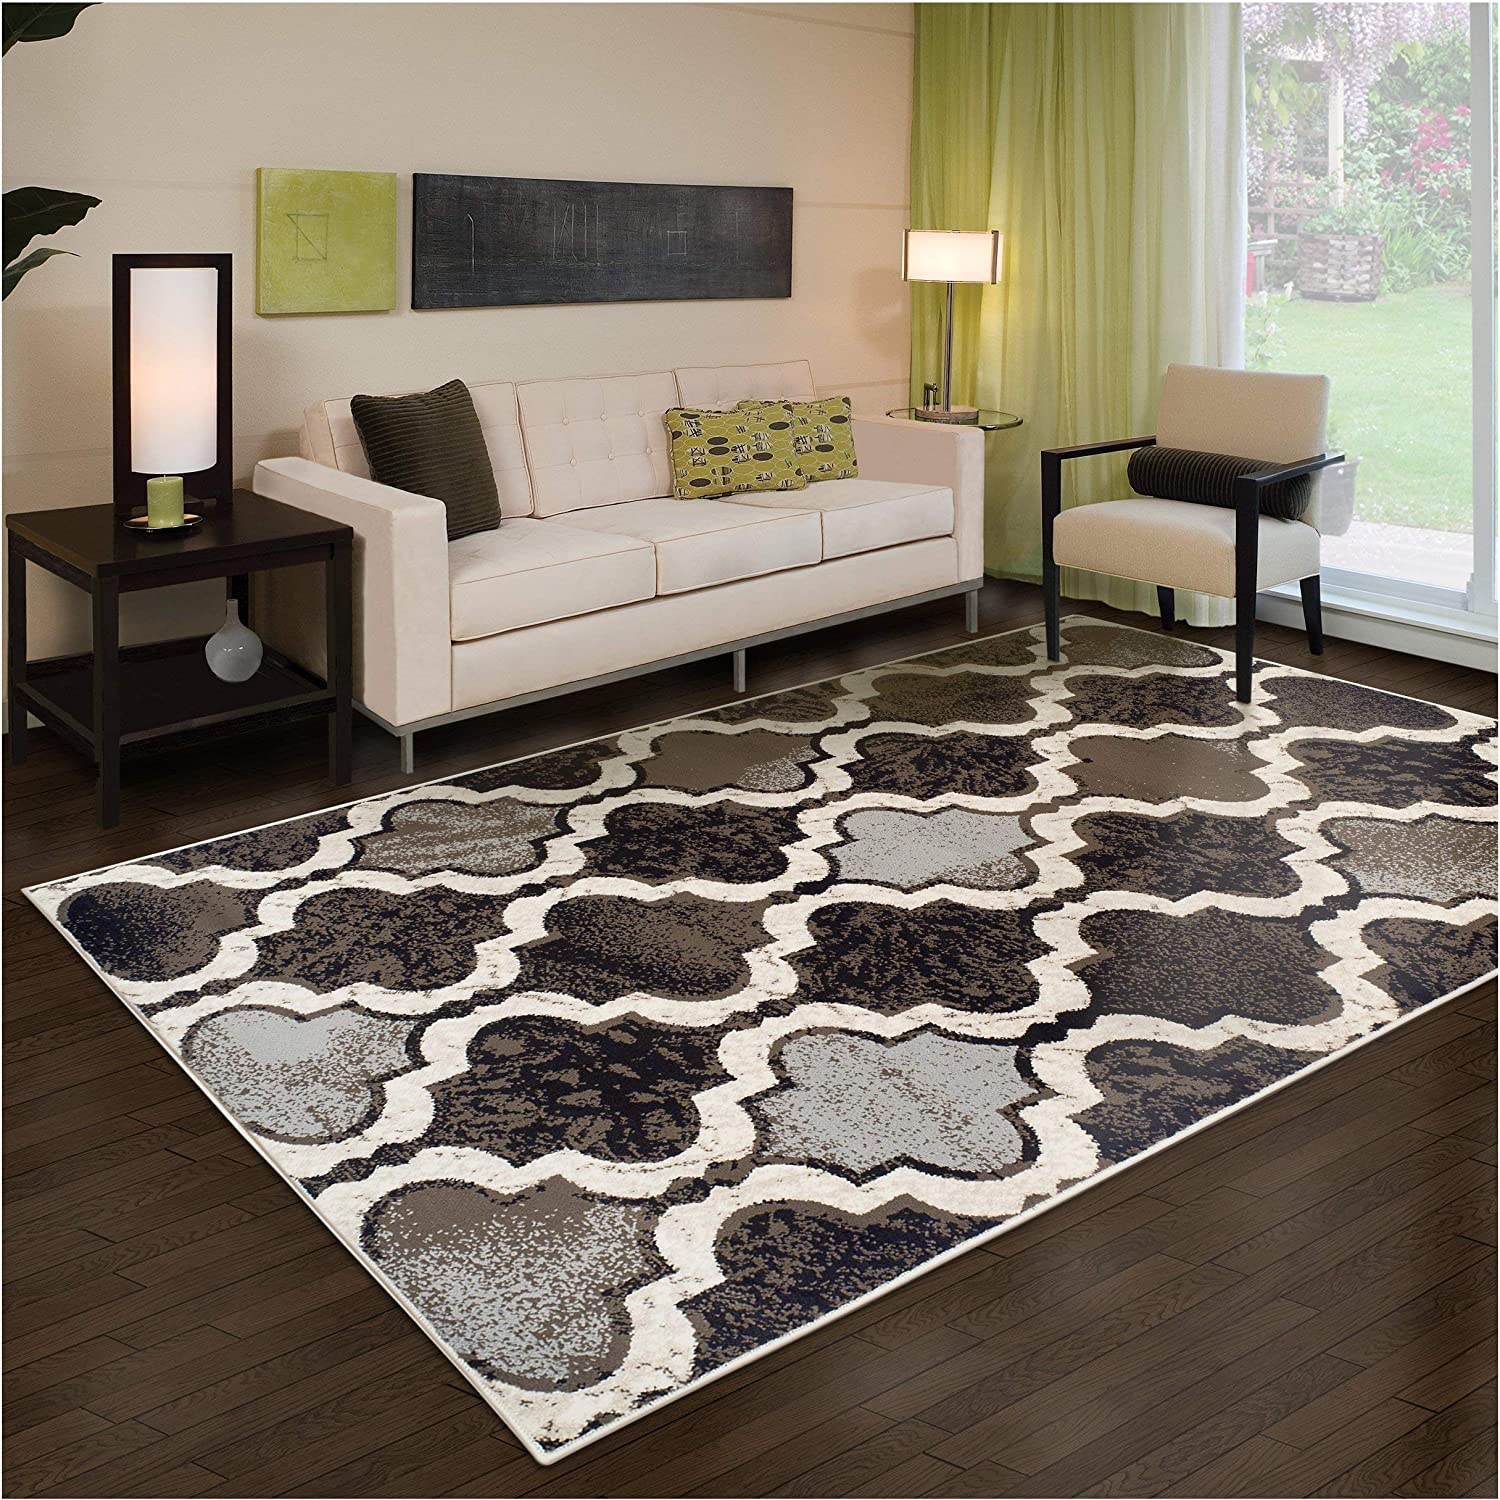 Beige Chic Textured Geometric Trellis Pattern Anti-Static 10mm Pile Height with Jute Backing 27 x 8 Runner Superior Modern Viking Collection Area Rug Water-Repellent Rugs